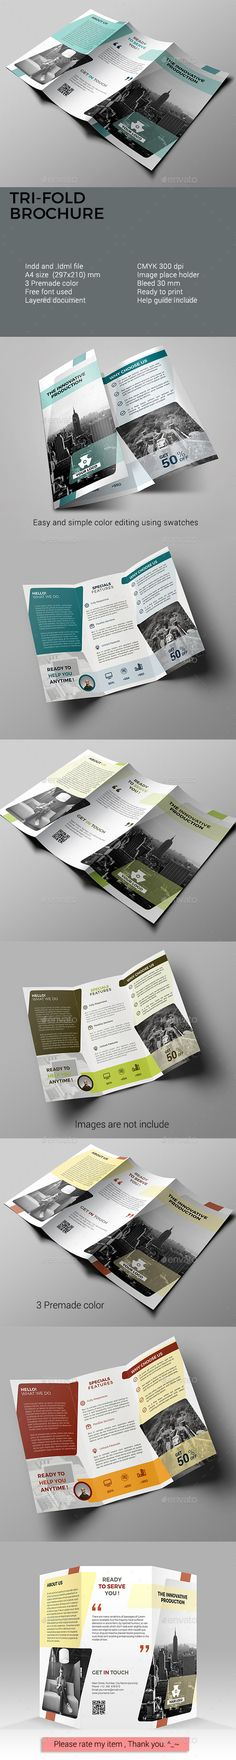 Trifold Brochure - Corporate #Business #Cards Download here: https://graphicriver.net/item/trifold-brochure/19570757?ref=alena994